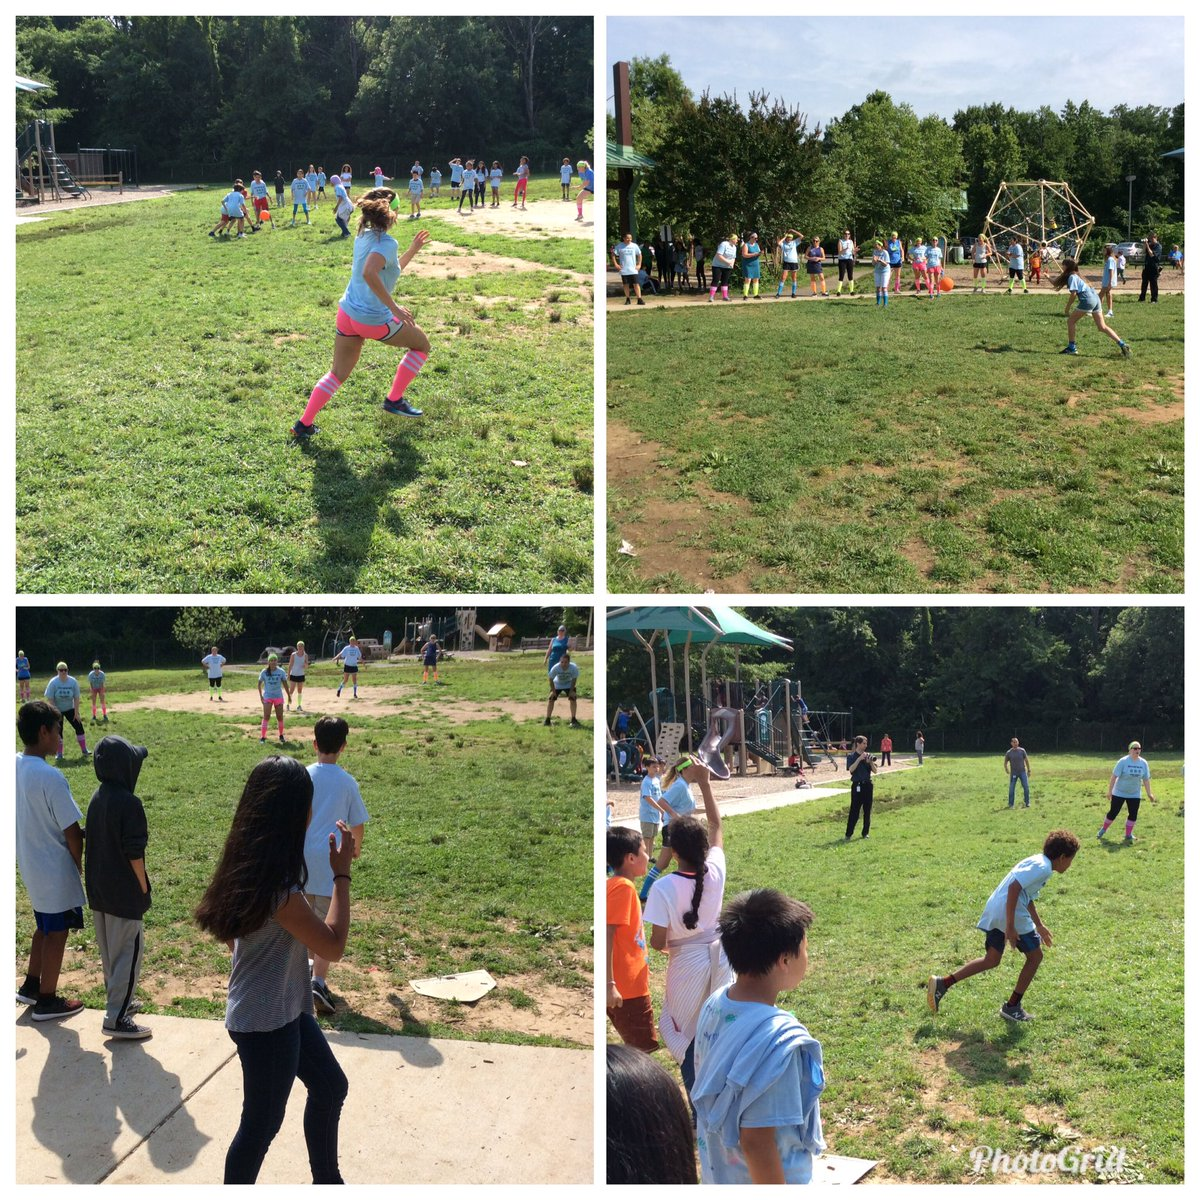 Great teamwork on the part of our crew of fifth grade students during their kickball game against the teachers. We're going to really miss them when they leave us for middle school!  <a target='_blank' href='http://twitter.com/CampbellOutside'>@CampbellOutside</a> <a target='_blank' href='http://twitter.com/CampbellAPS'>@CampbellAPS</a> <a target='_blank' href='http://twitter.com/ELeducation'>@ELeducation</a> <a target='_blank' href='https://t.co/BOZ8TbM46u'>https://t.co/BOZ8TbM46u</a>